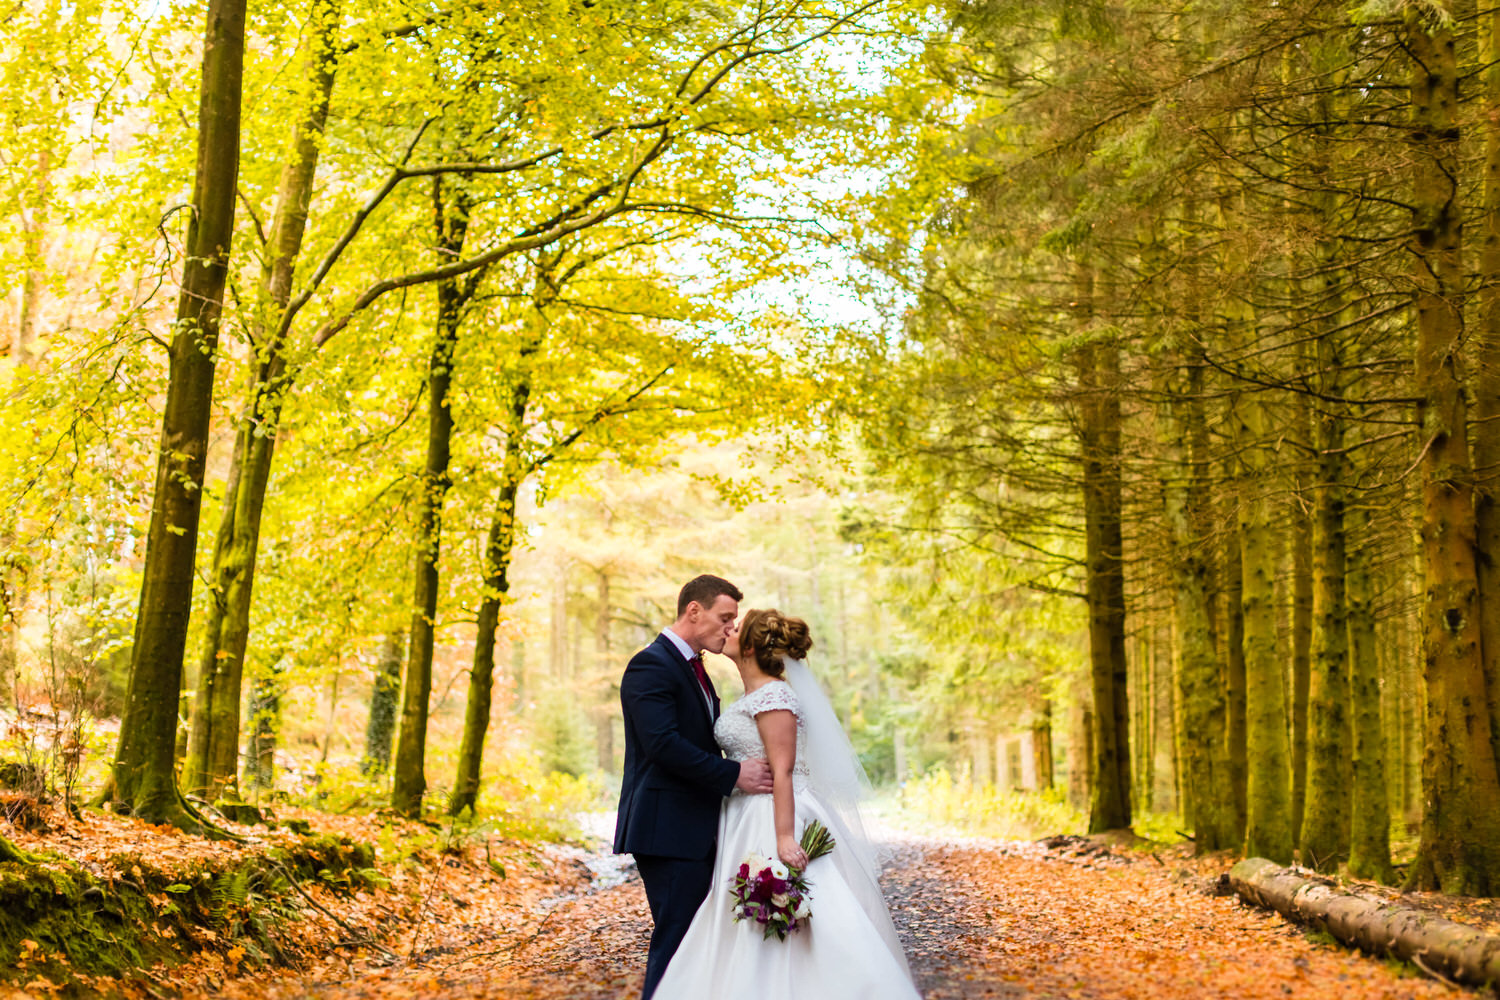 kissing in the forest for these wedding photos